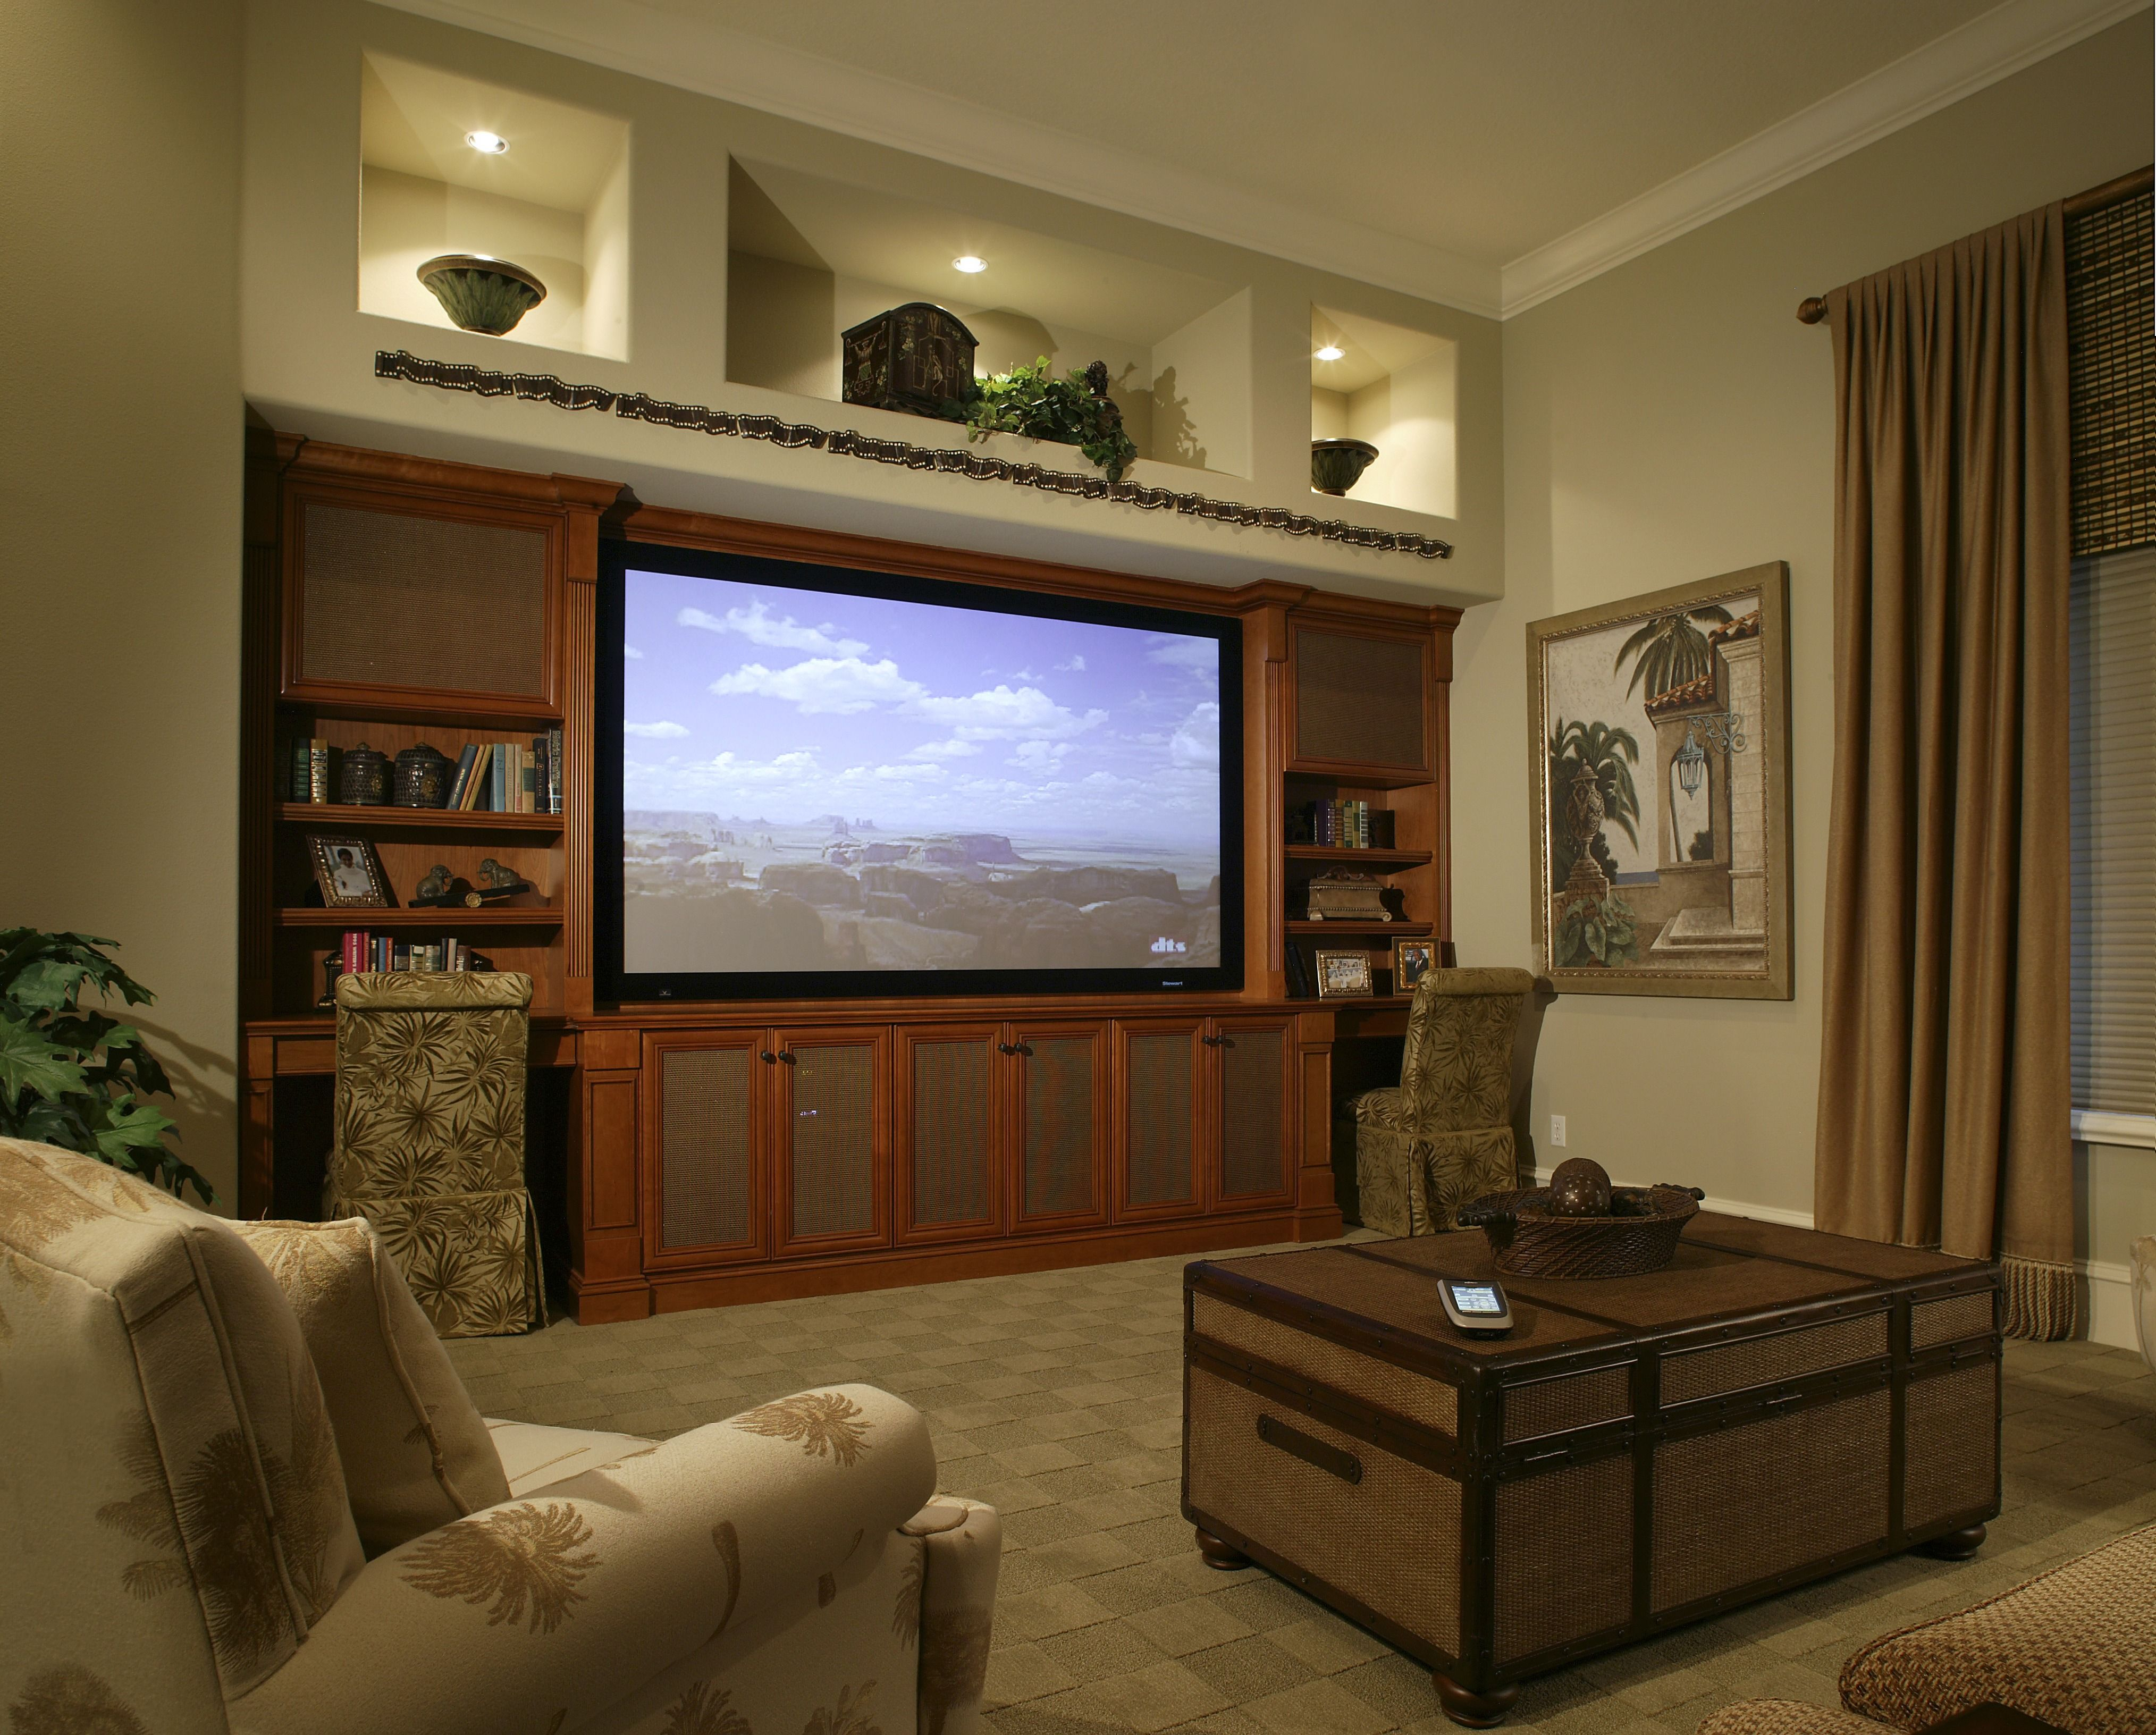 Small Home Theater But A Big Screen To Give You